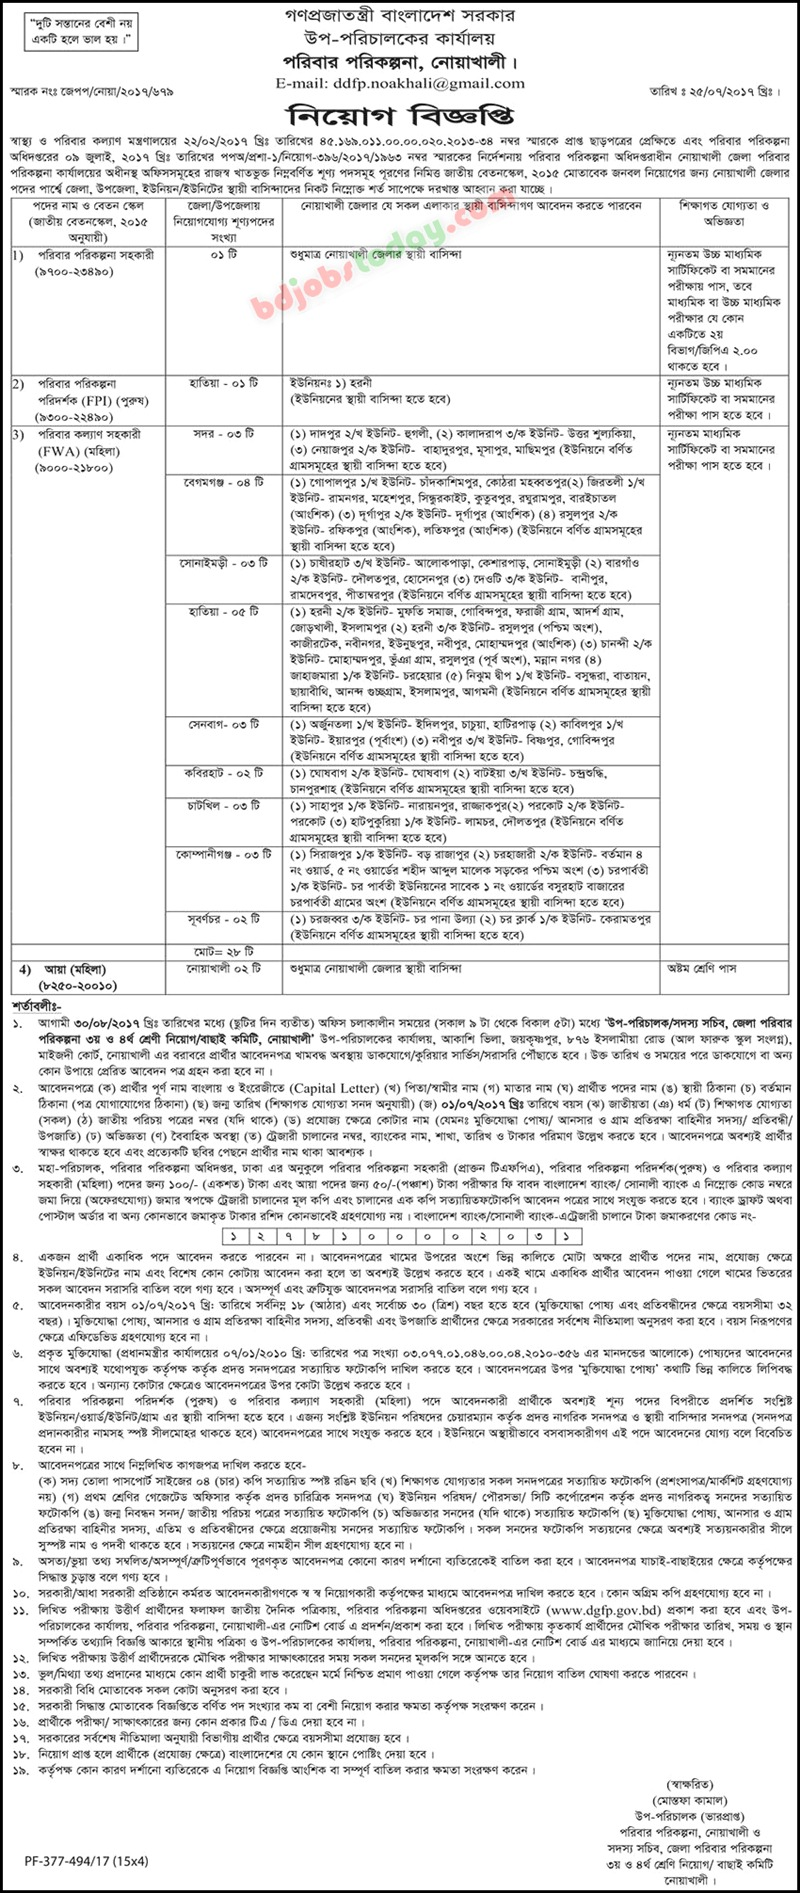 Office of Deputy Director of Family Planning, Noakhali jobs